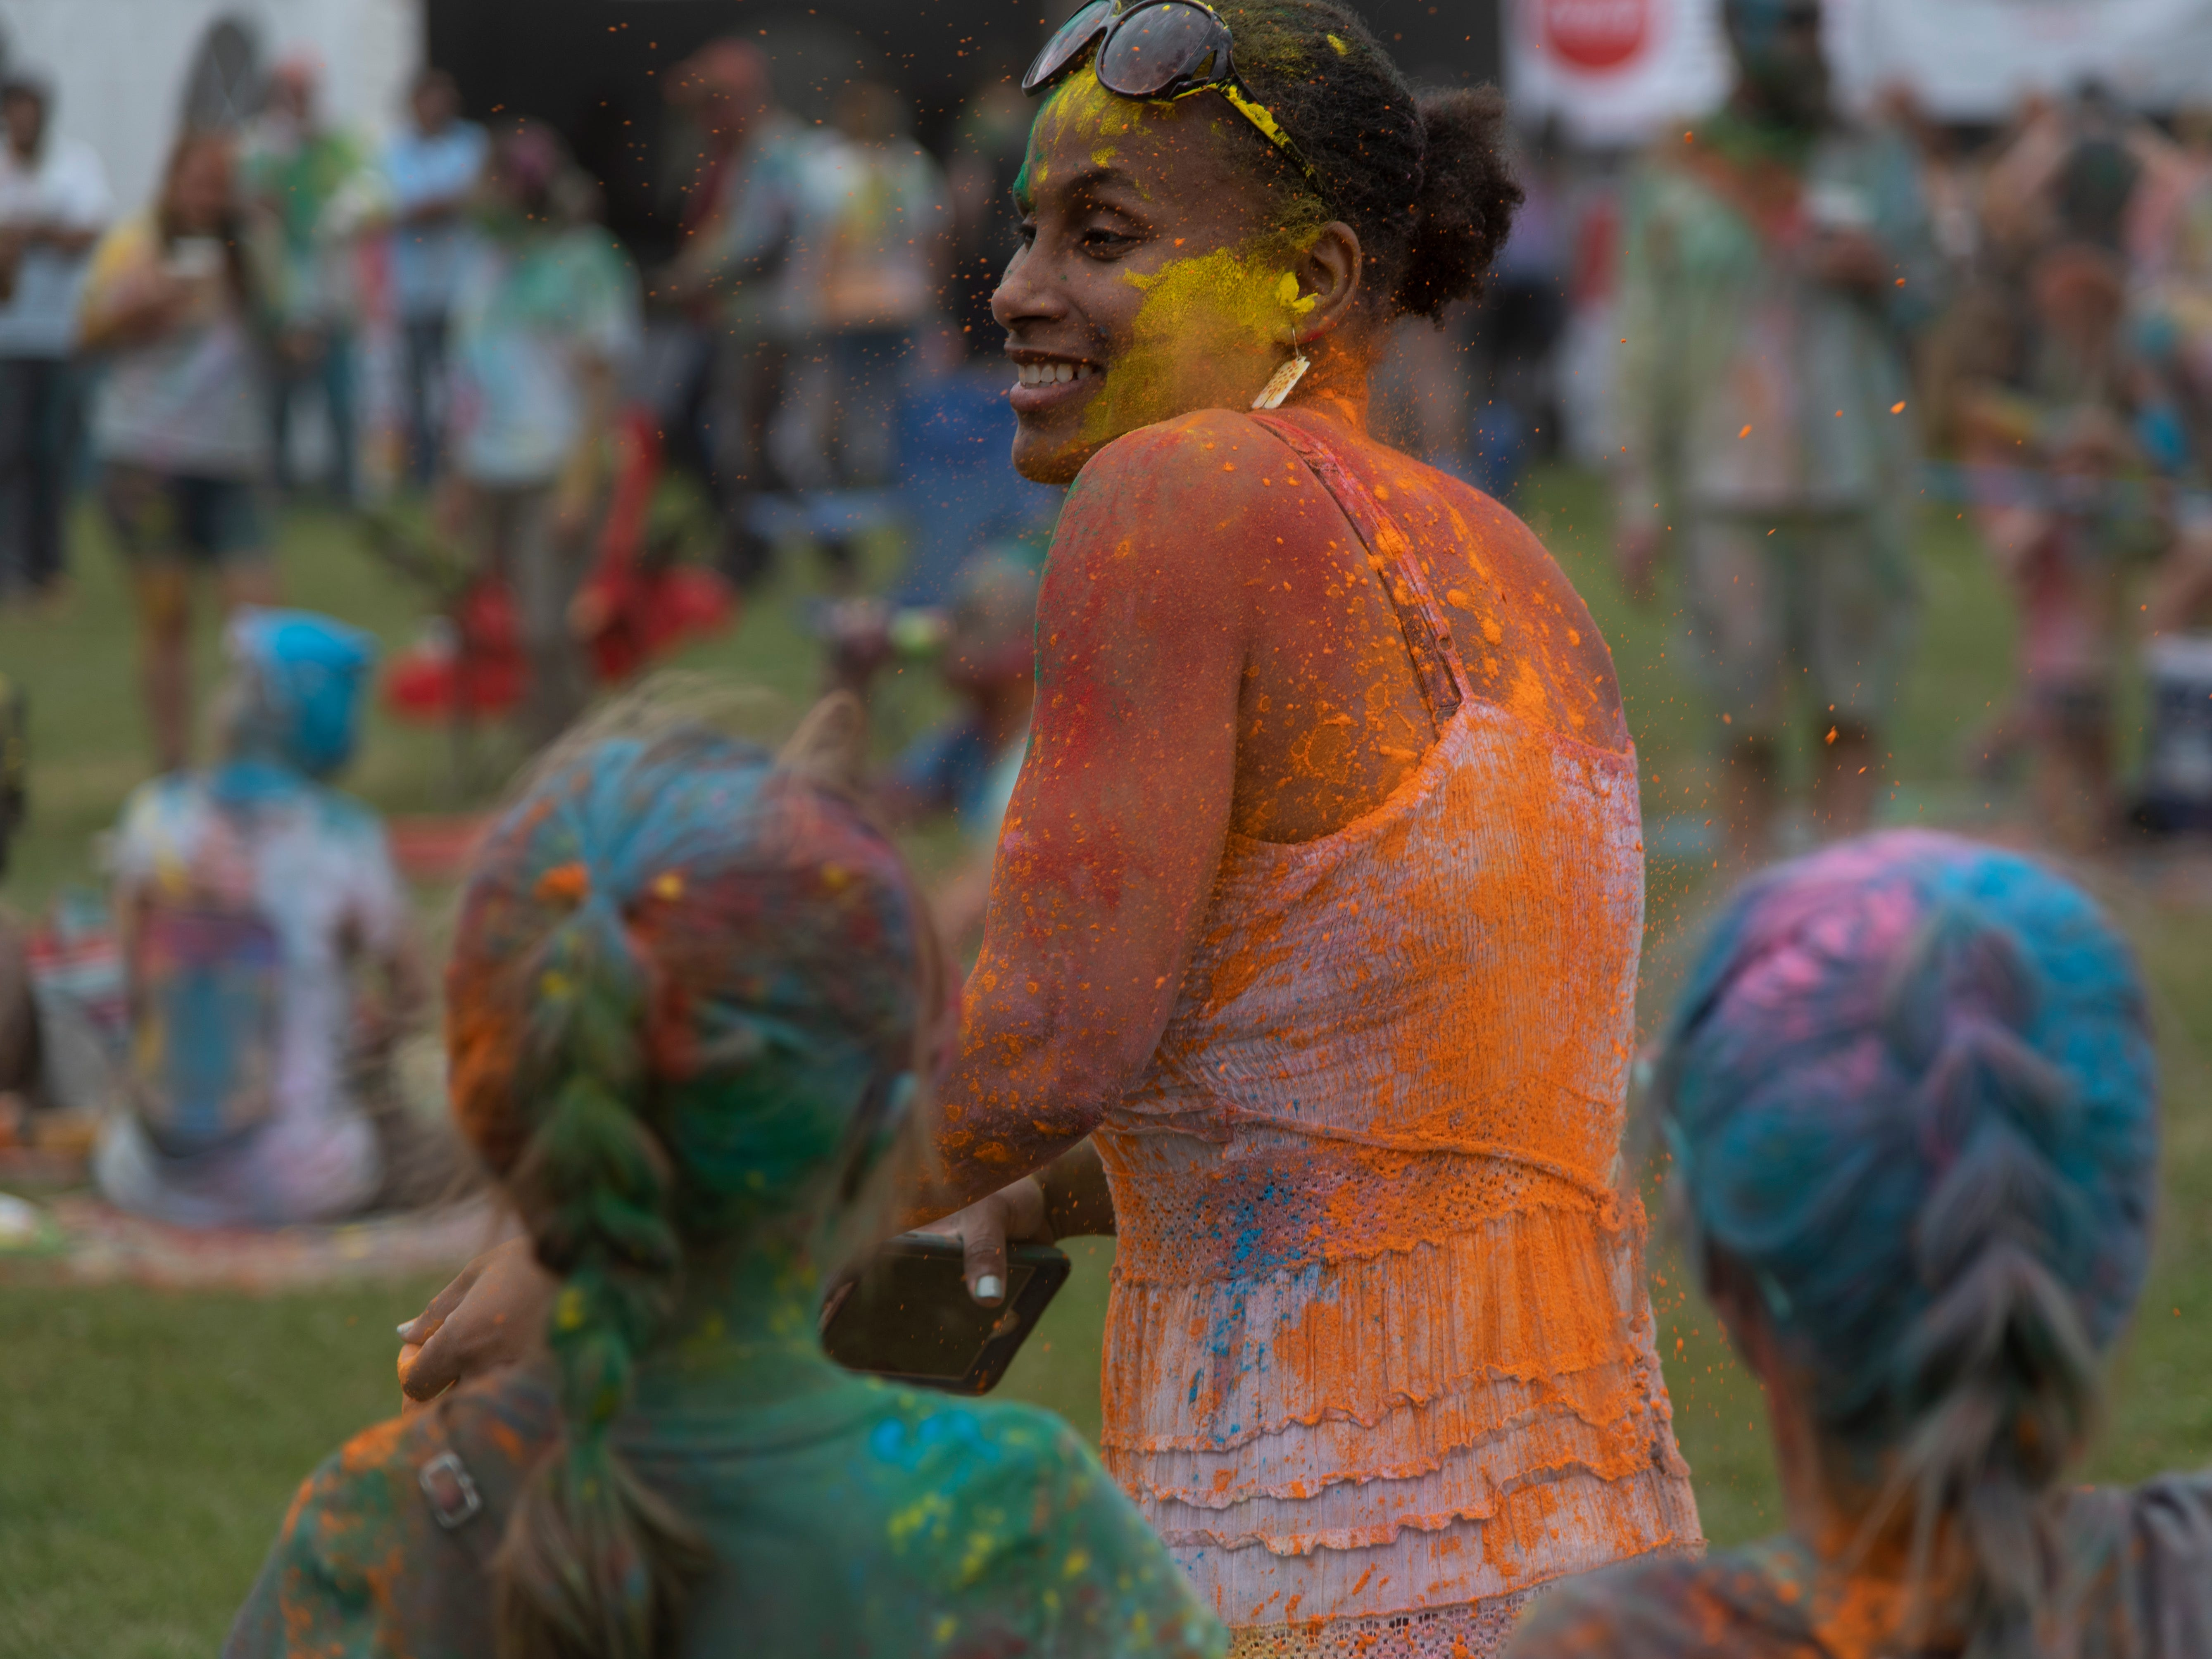 Festival goers celebrate at the ninth annual Holi Festival of Lafayette in Girard Park on Saturday, March 30, 2019.